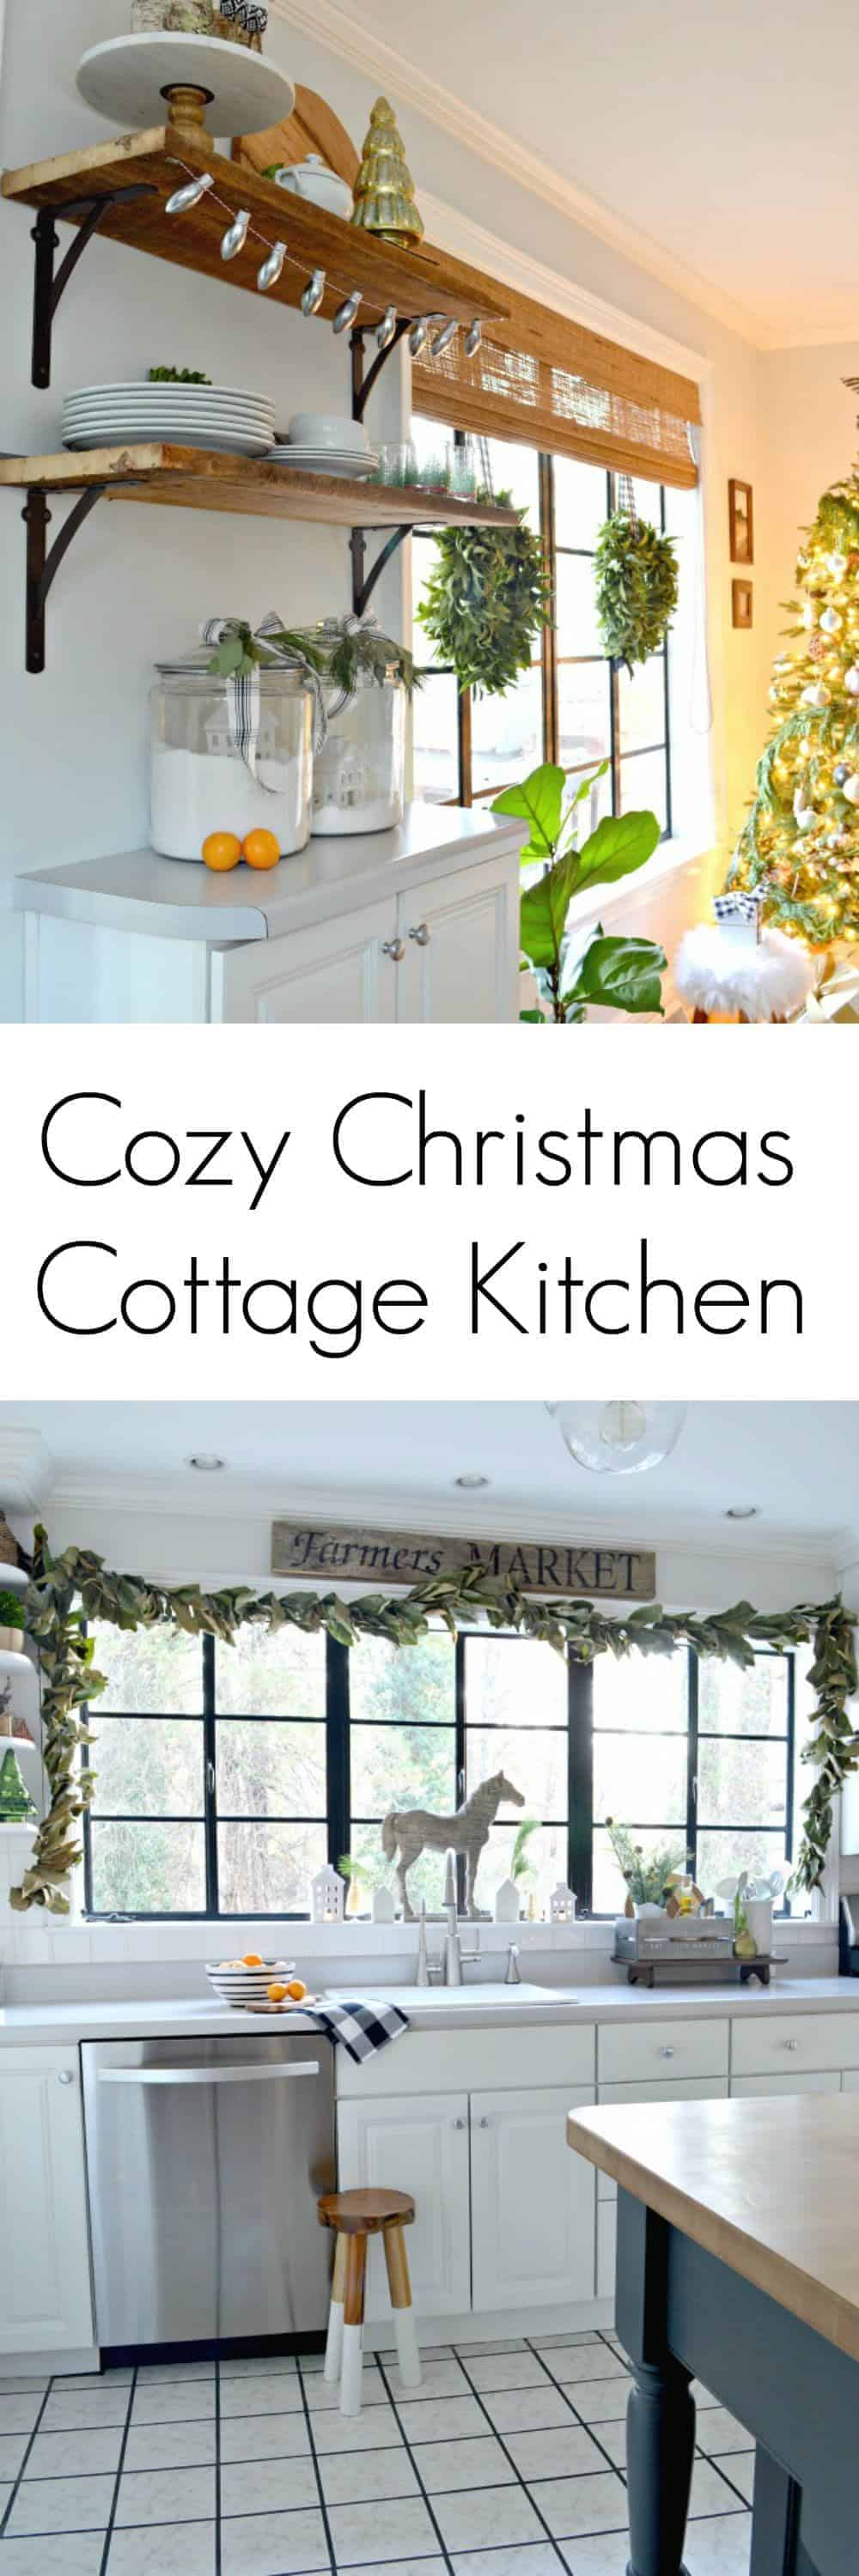 Tour this cozy cottage kitchen dressed for Christmas